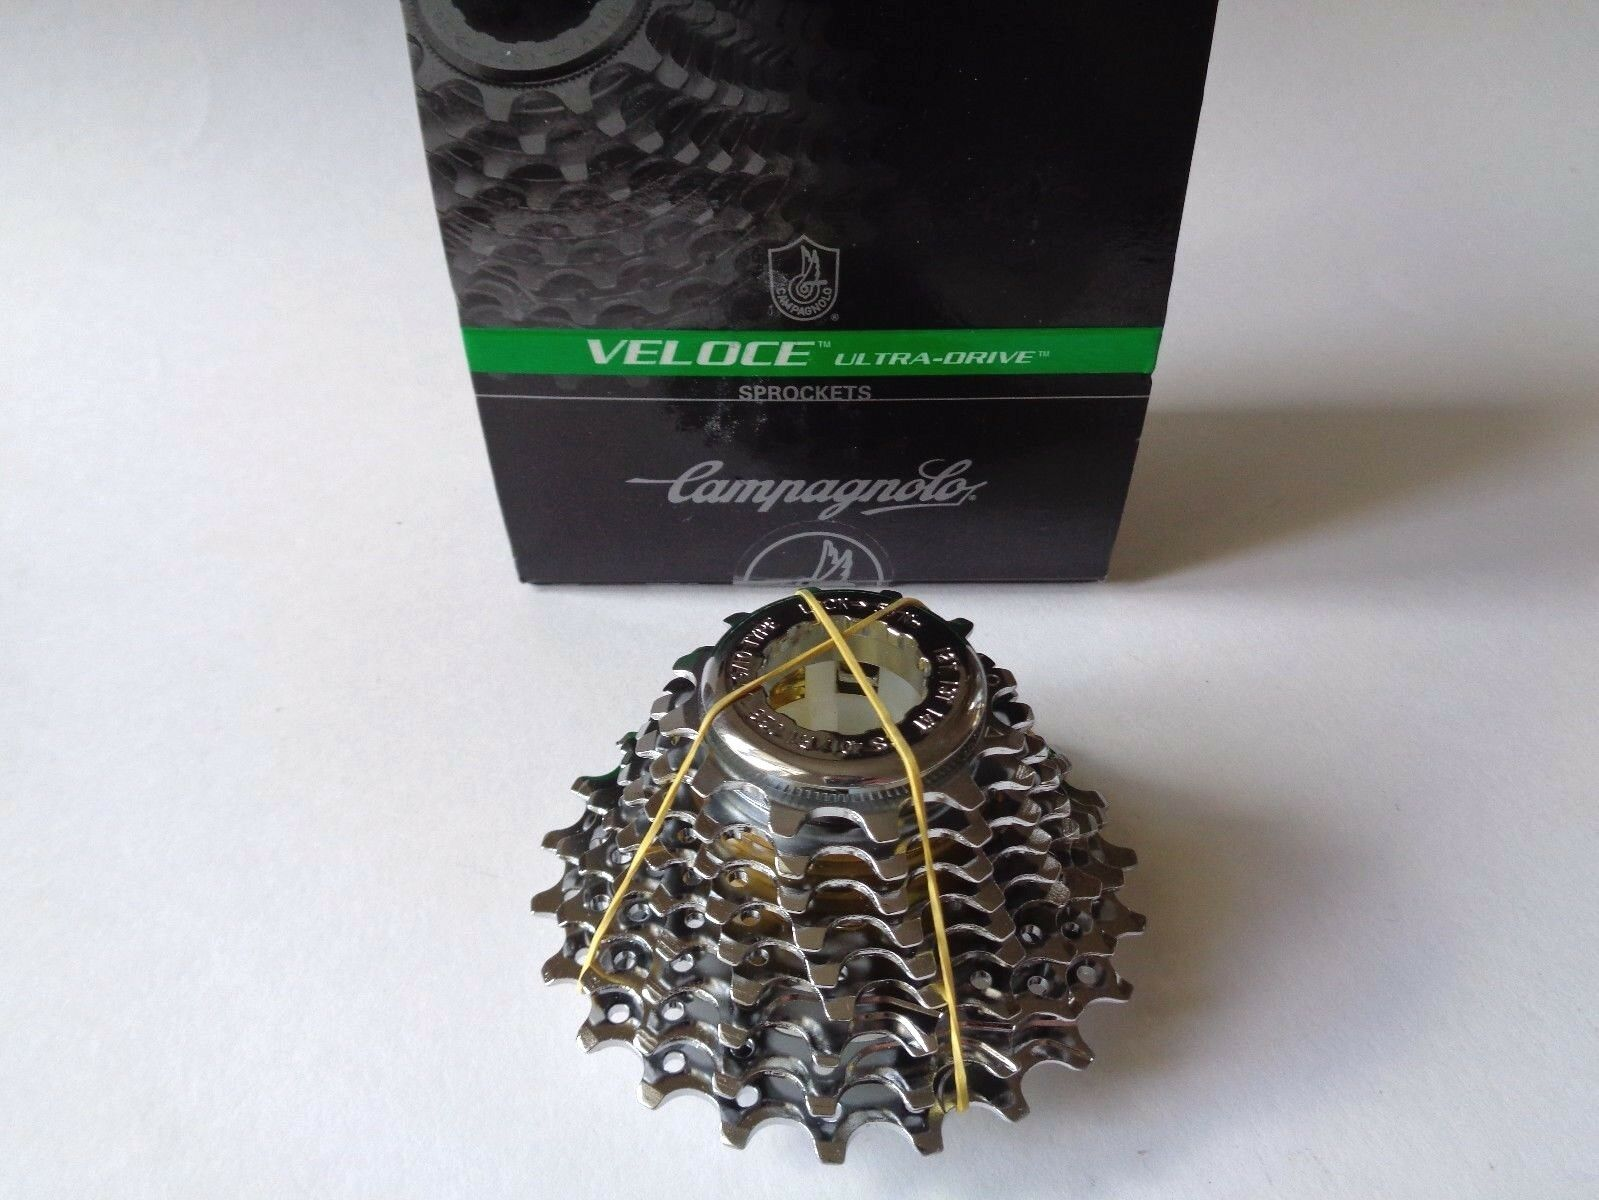 NOS Campagnolo Veloce 9 speed Ultra-Drive System 12-23T cassette